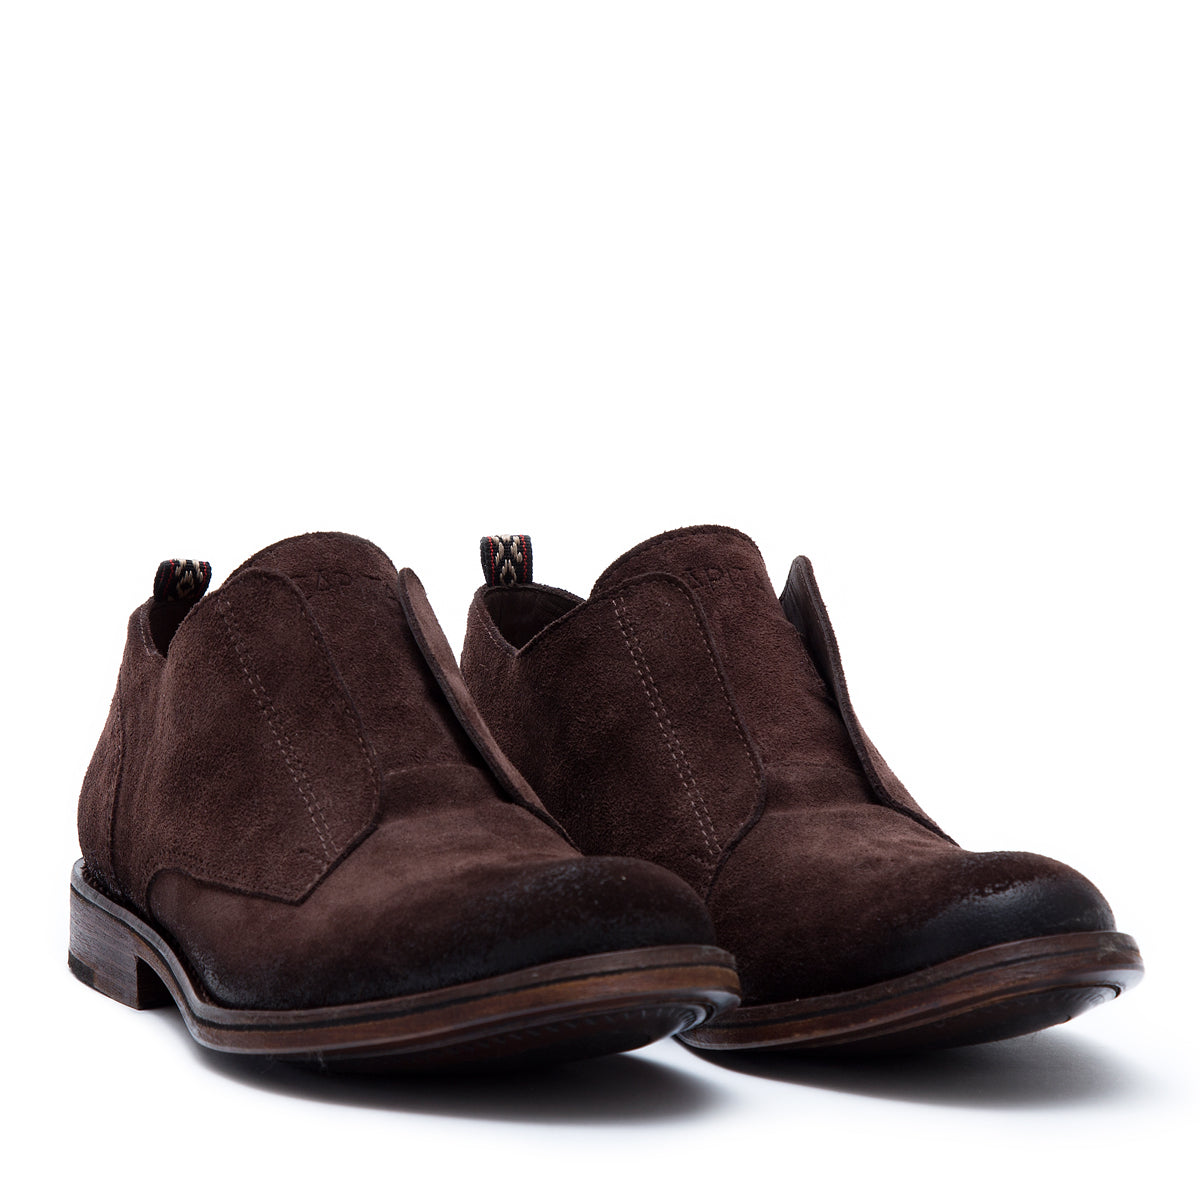 Wooster Brown - Nobuk leather shoes